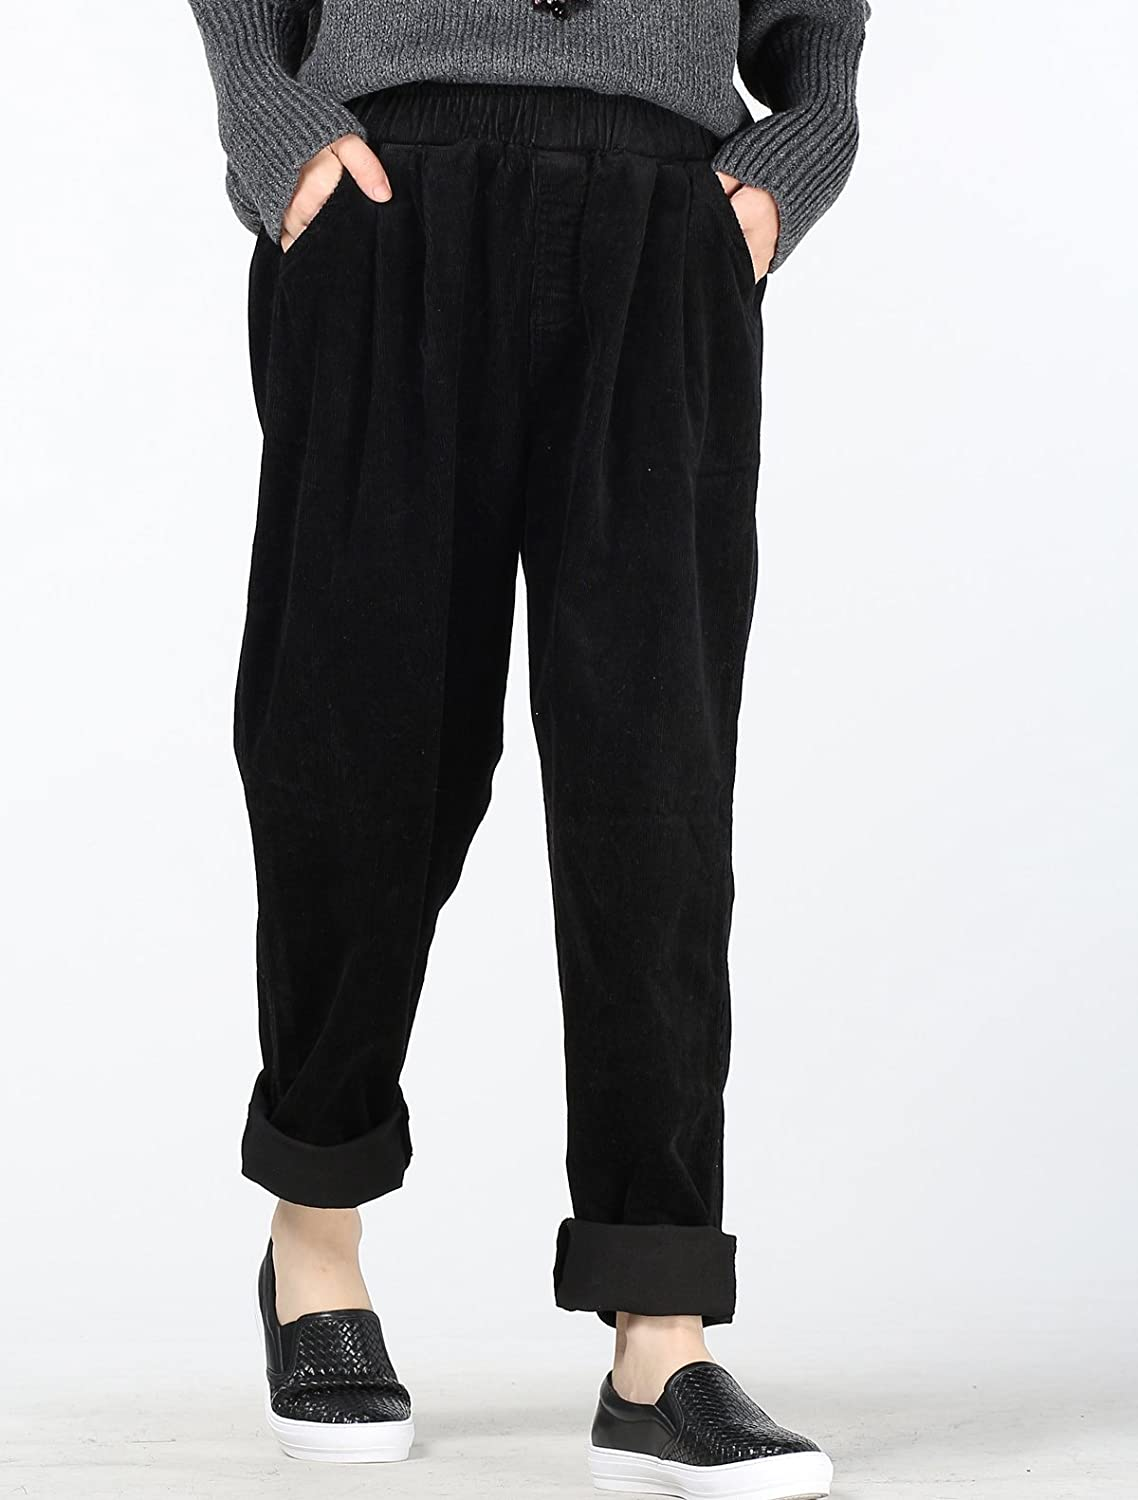 c7f353db120ab Vogstyle Women s Autumn Winter Casual Corduroy Pants with Pockets   Amazon.co.uk  Clothing